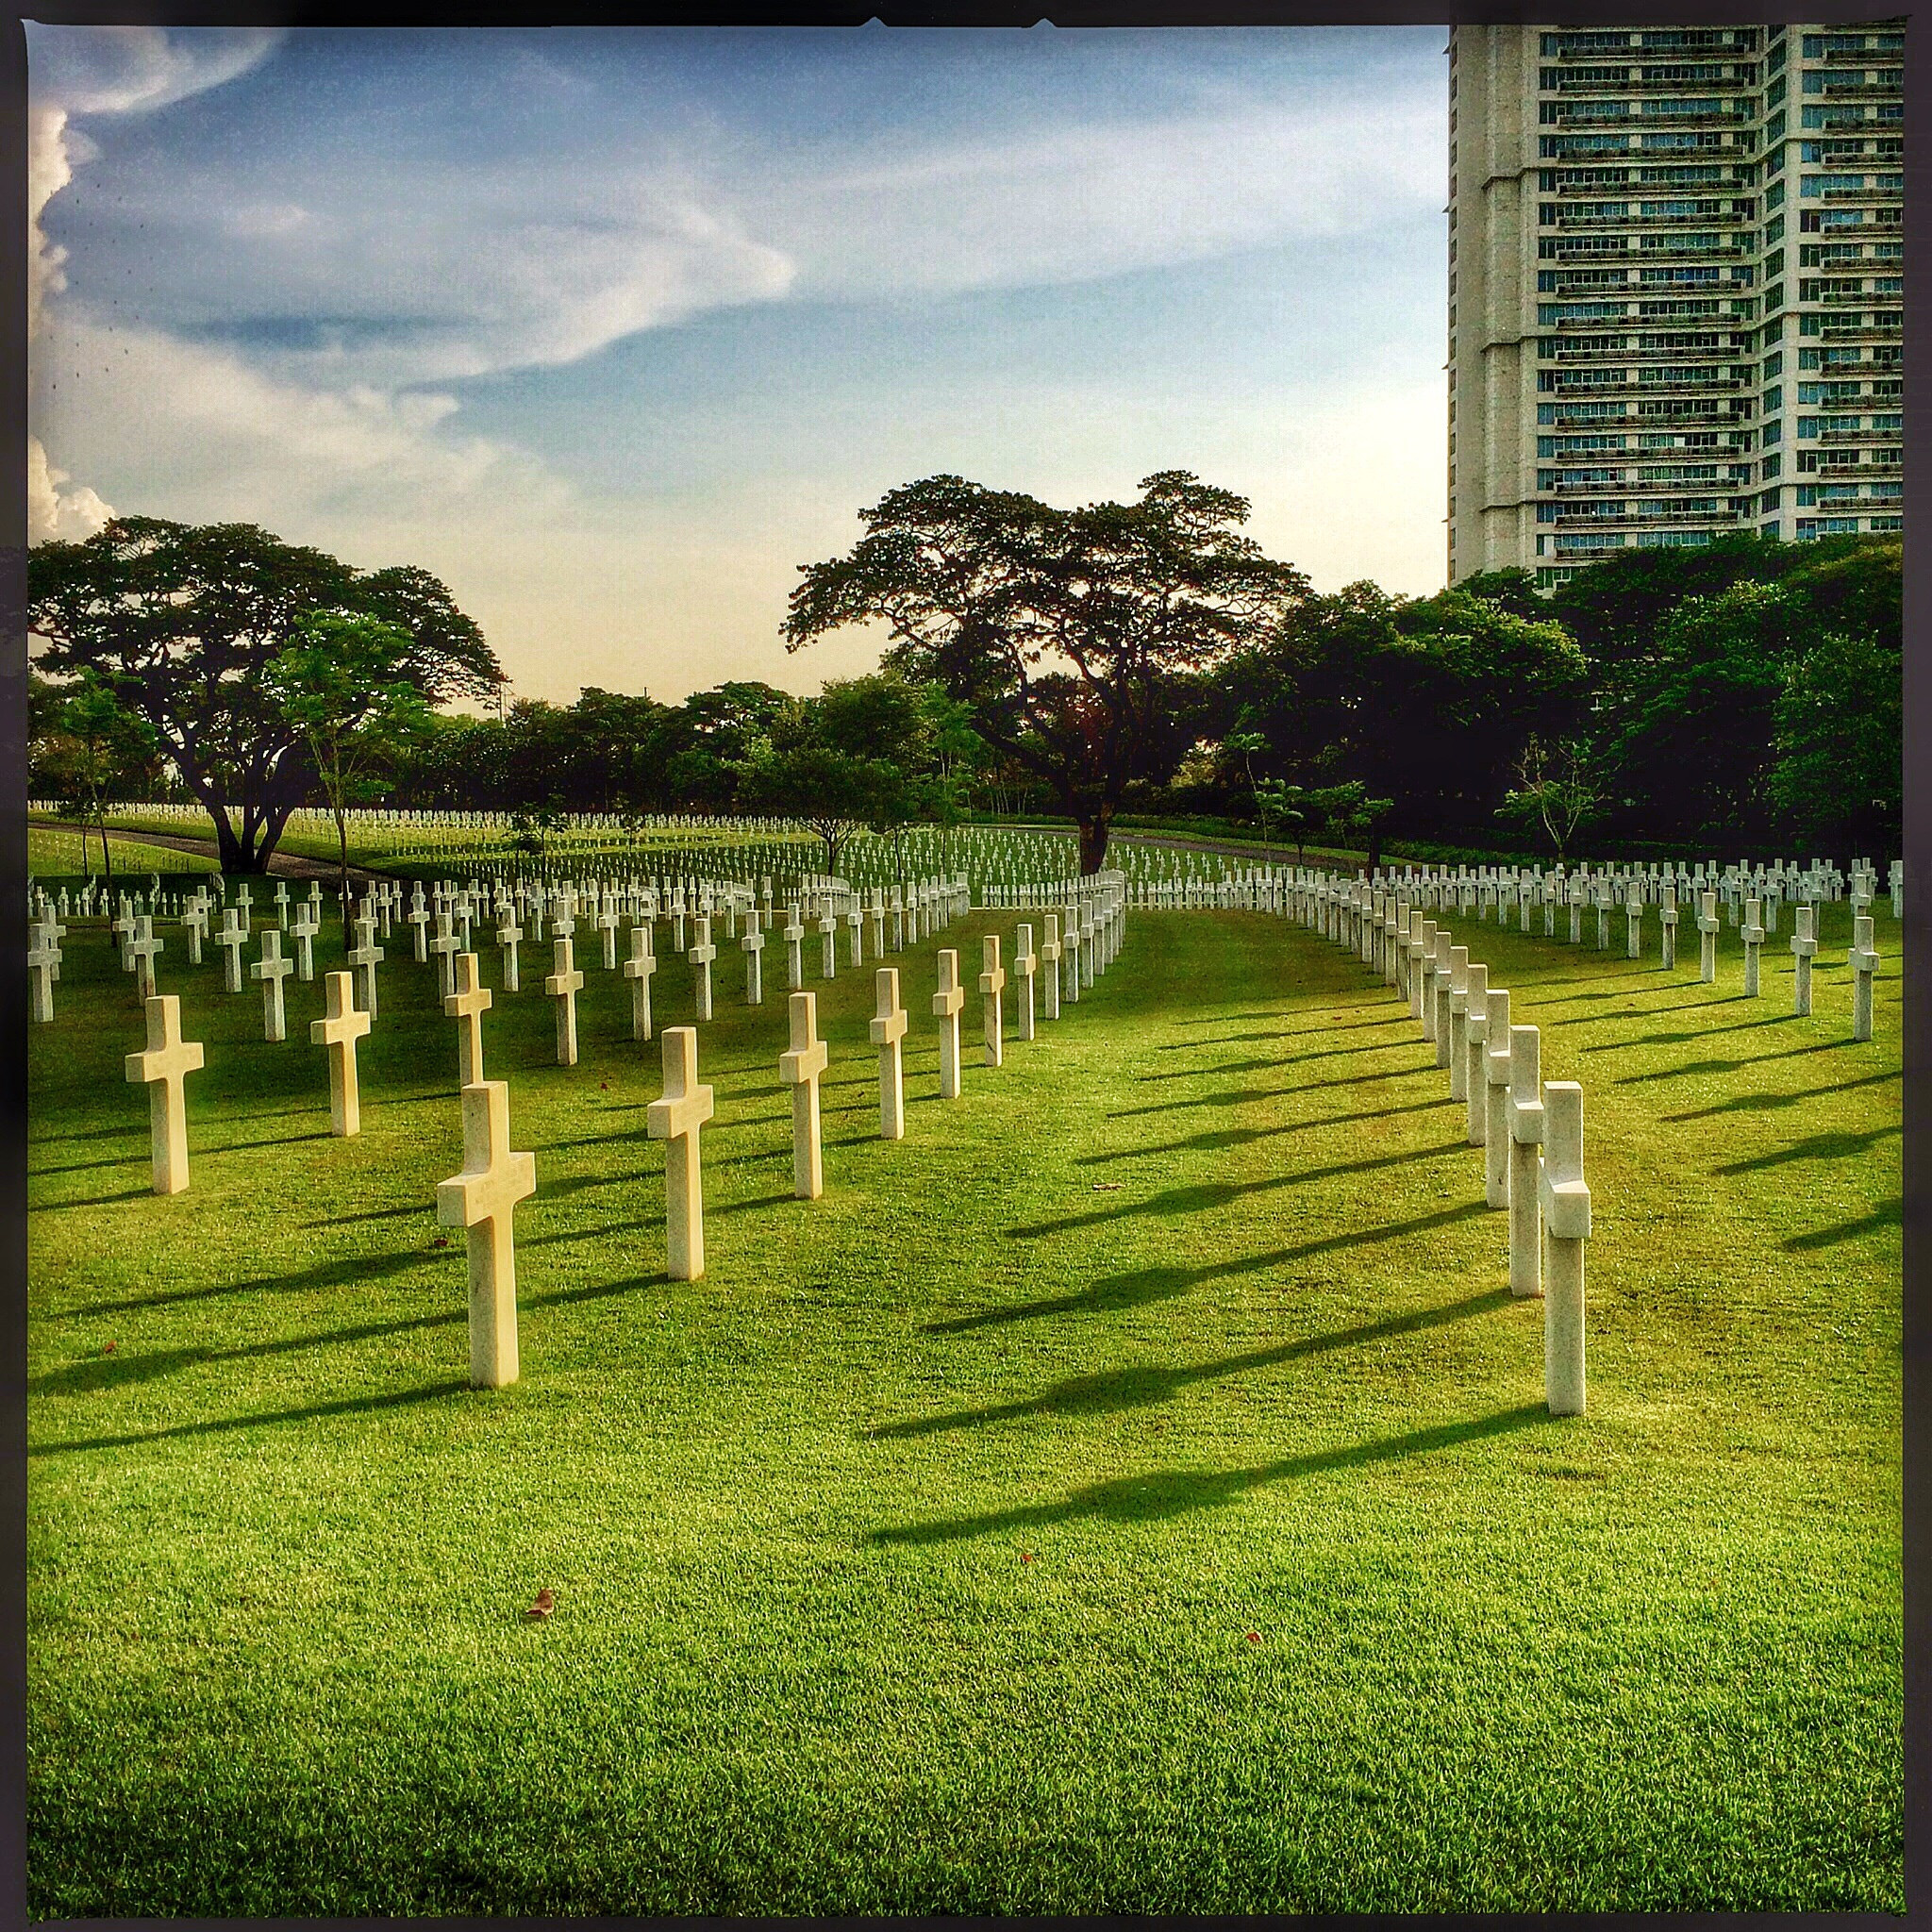 Rows of white crosses in a cemetery with short green grass. Trees and a tall building in the background.